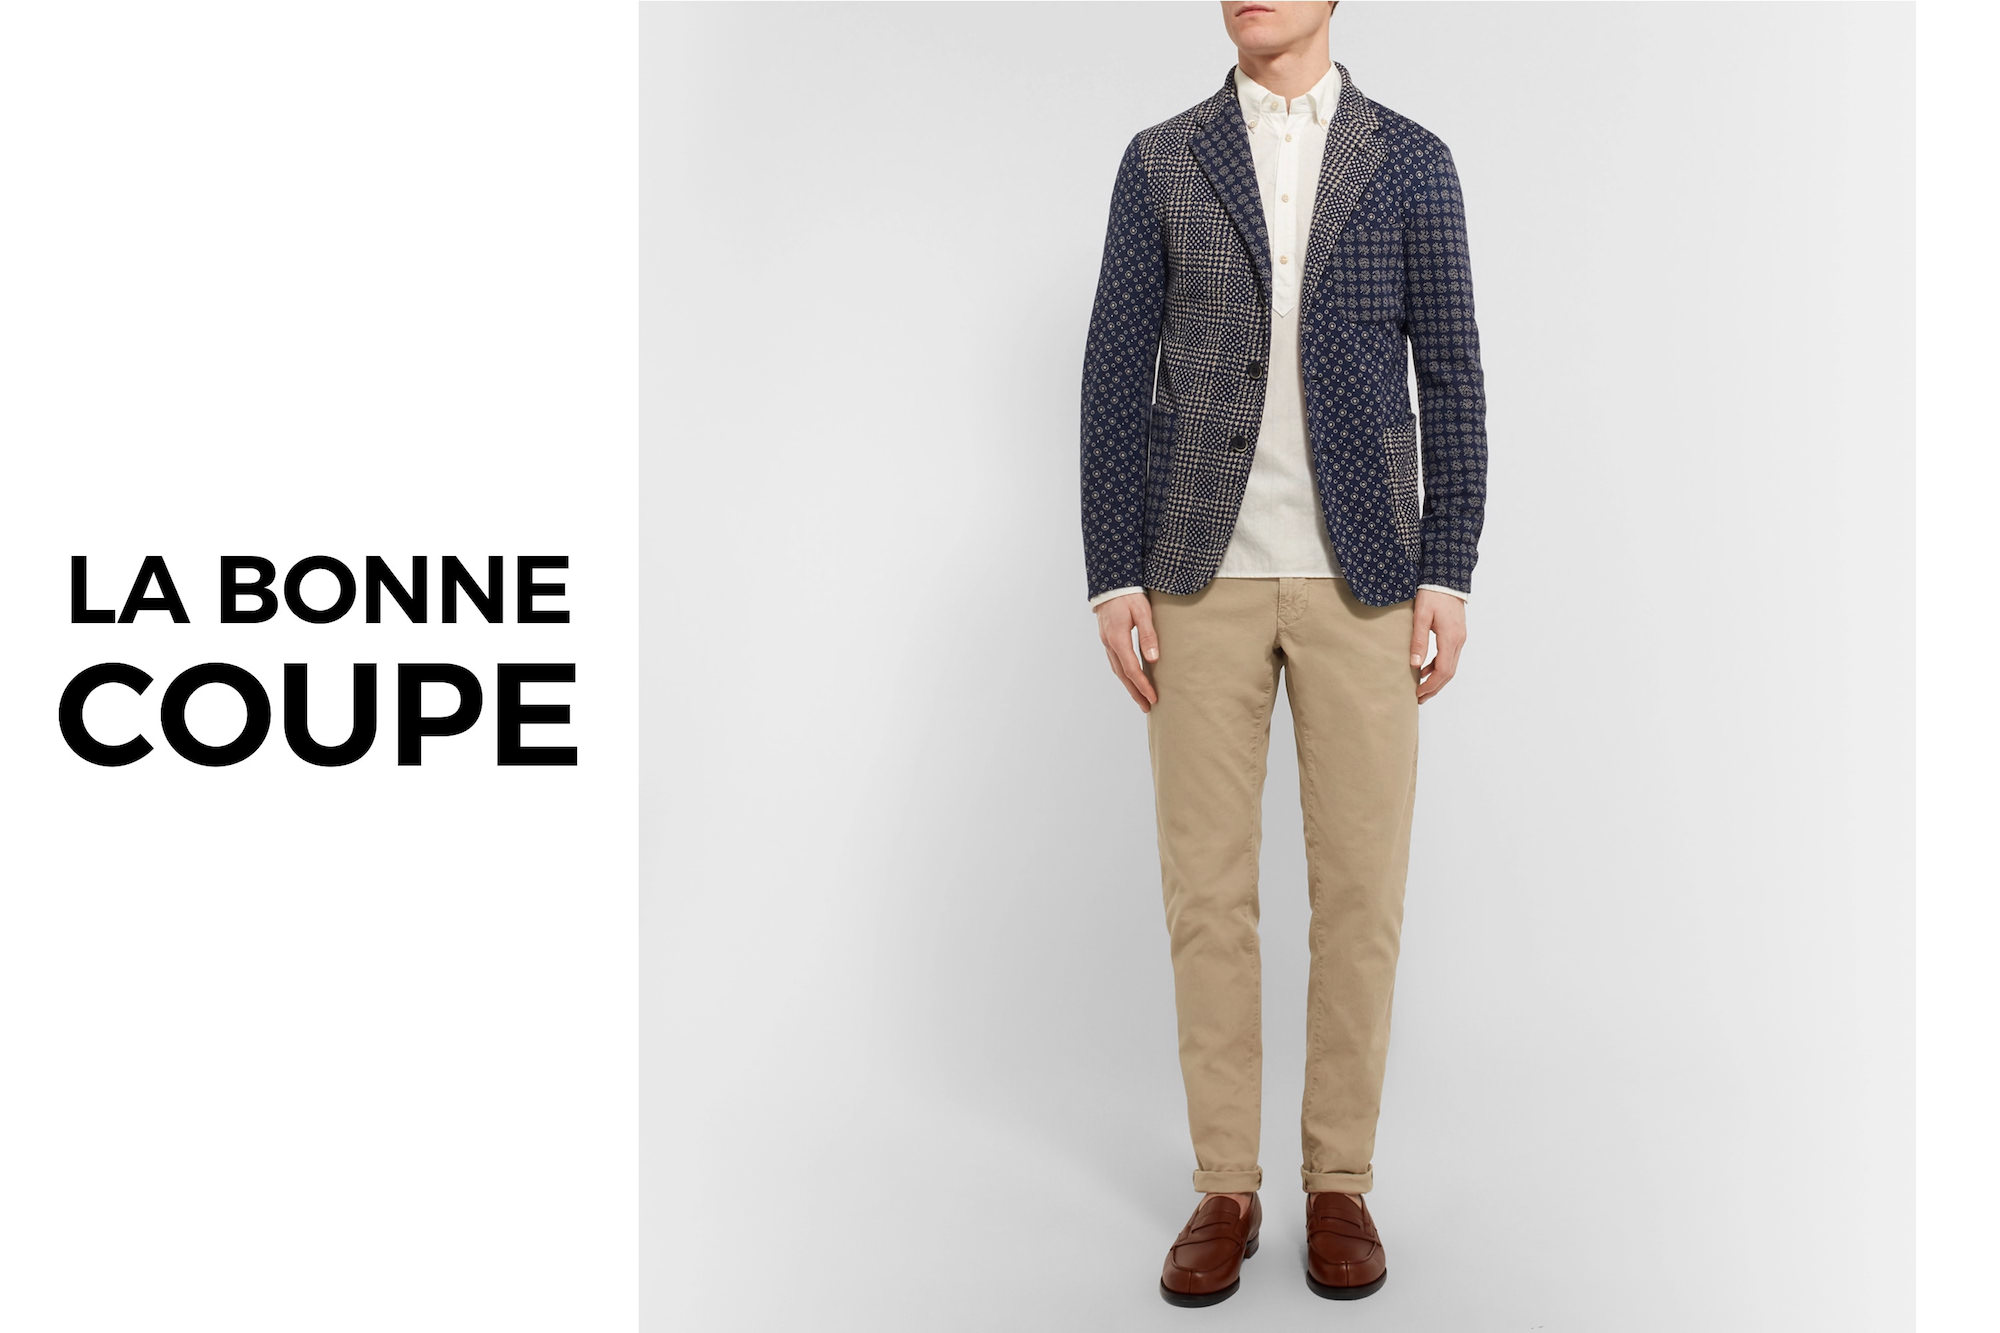 Coupe chino femme definition